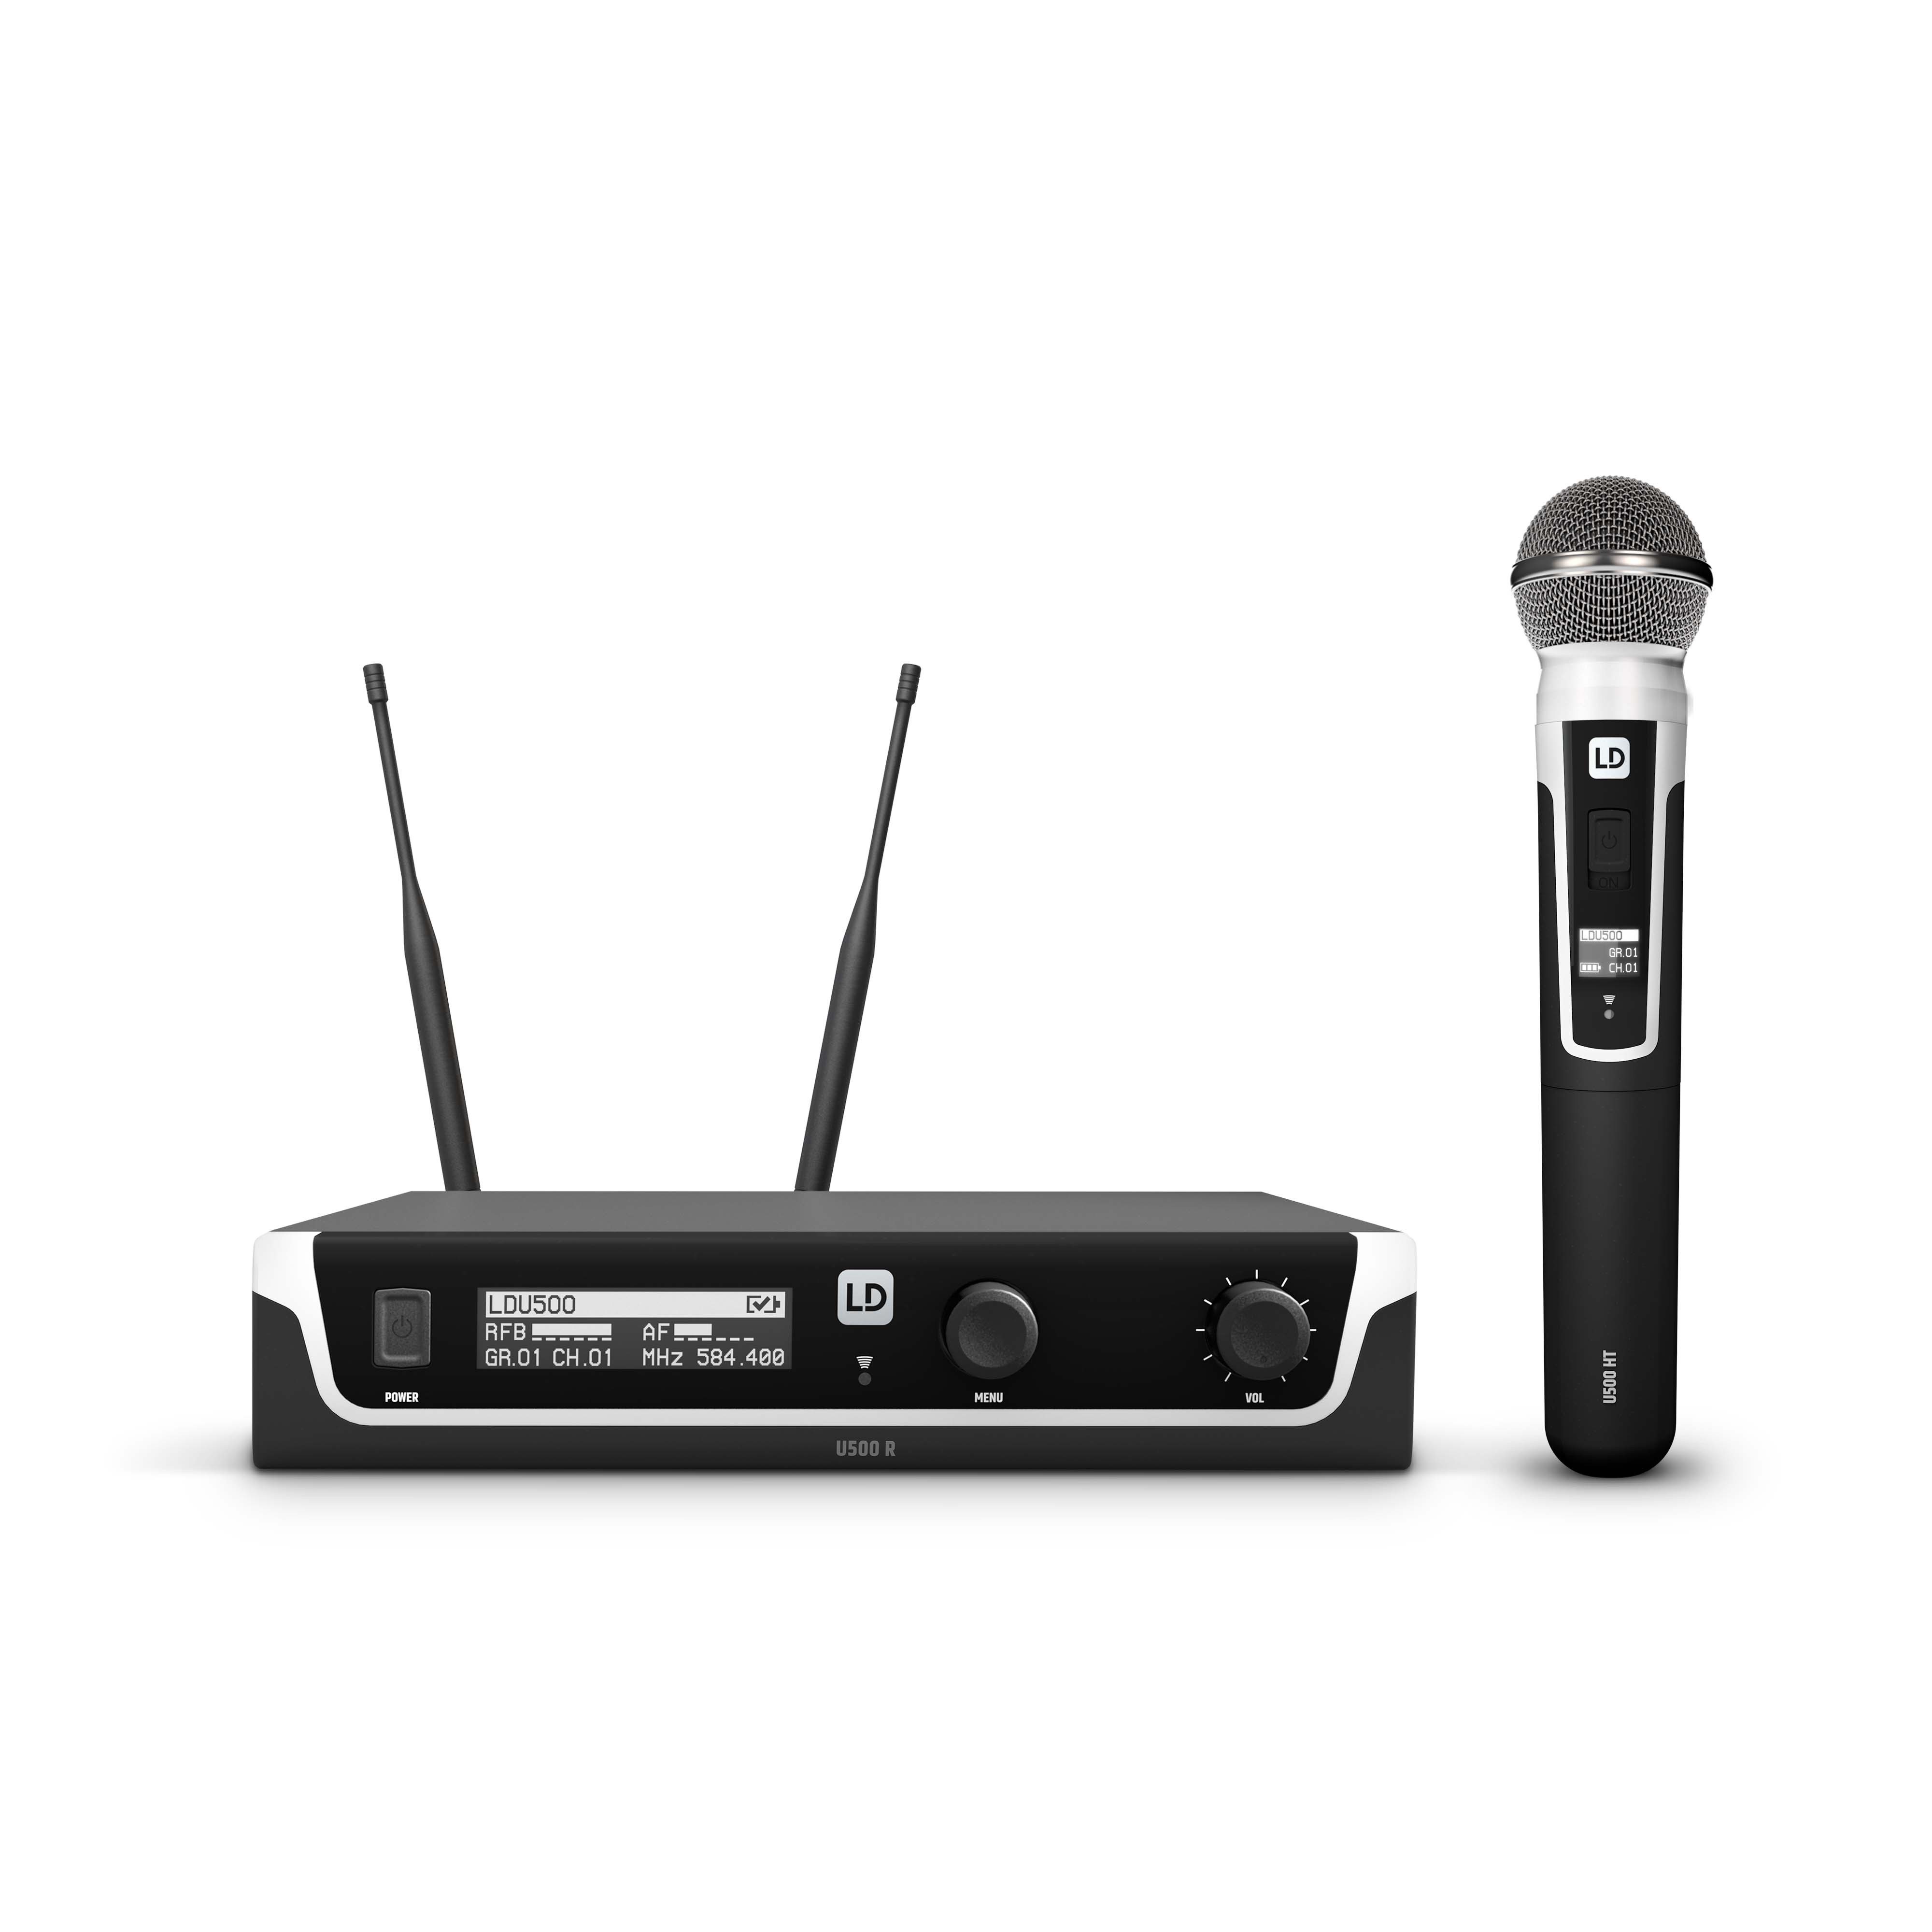 U518 HHD Wireless Microphone System with Dynamic Handheld Microphone